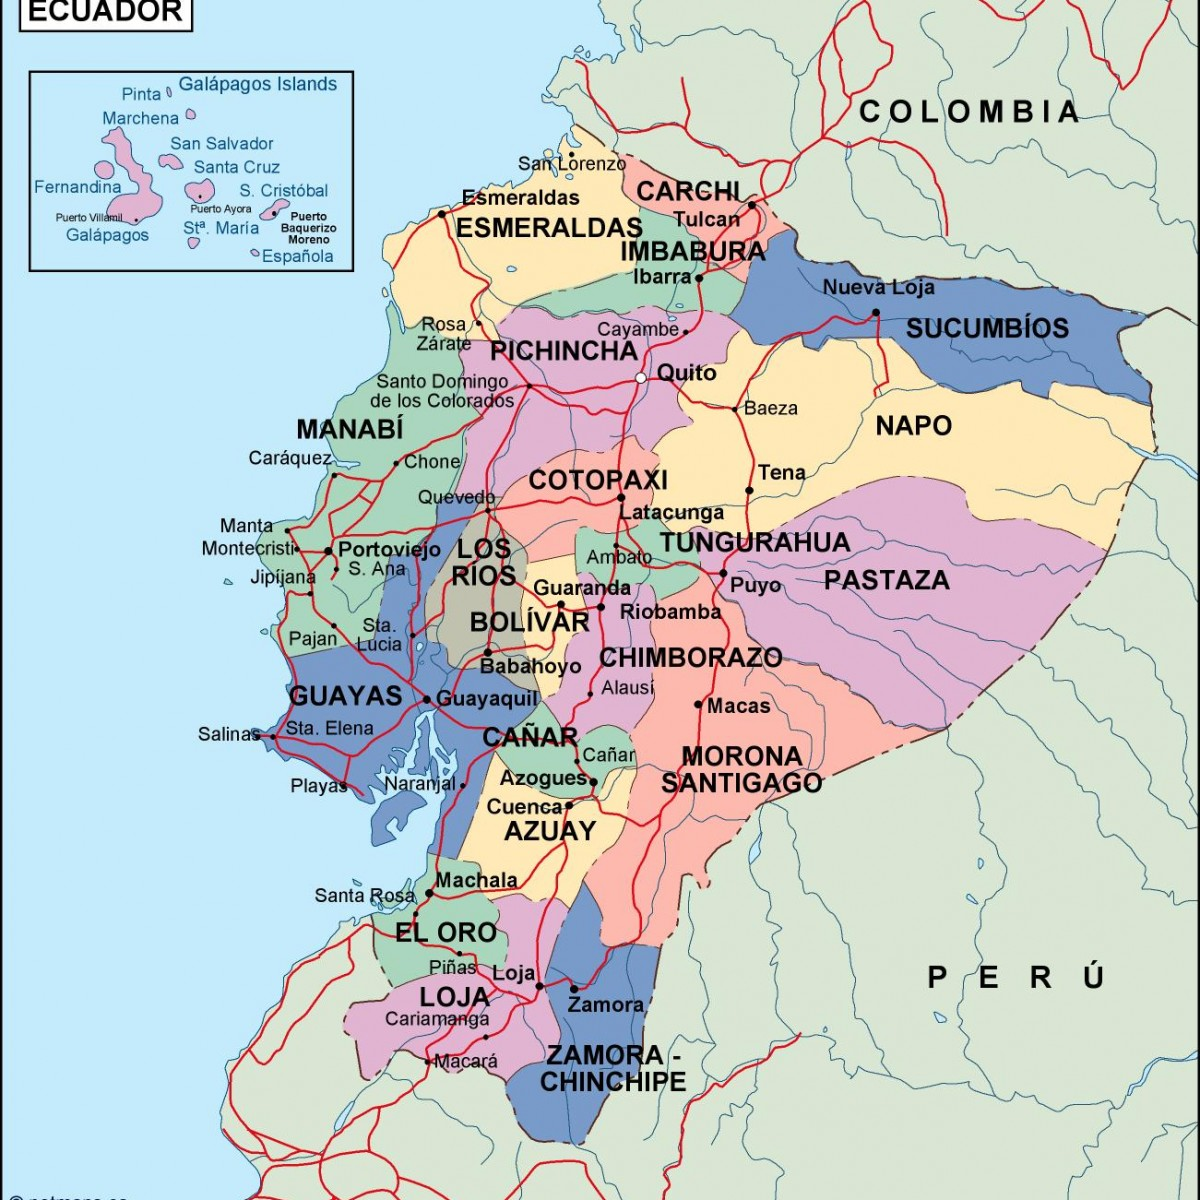 ecuador political map Eps Illustrator Map Our cartographers have